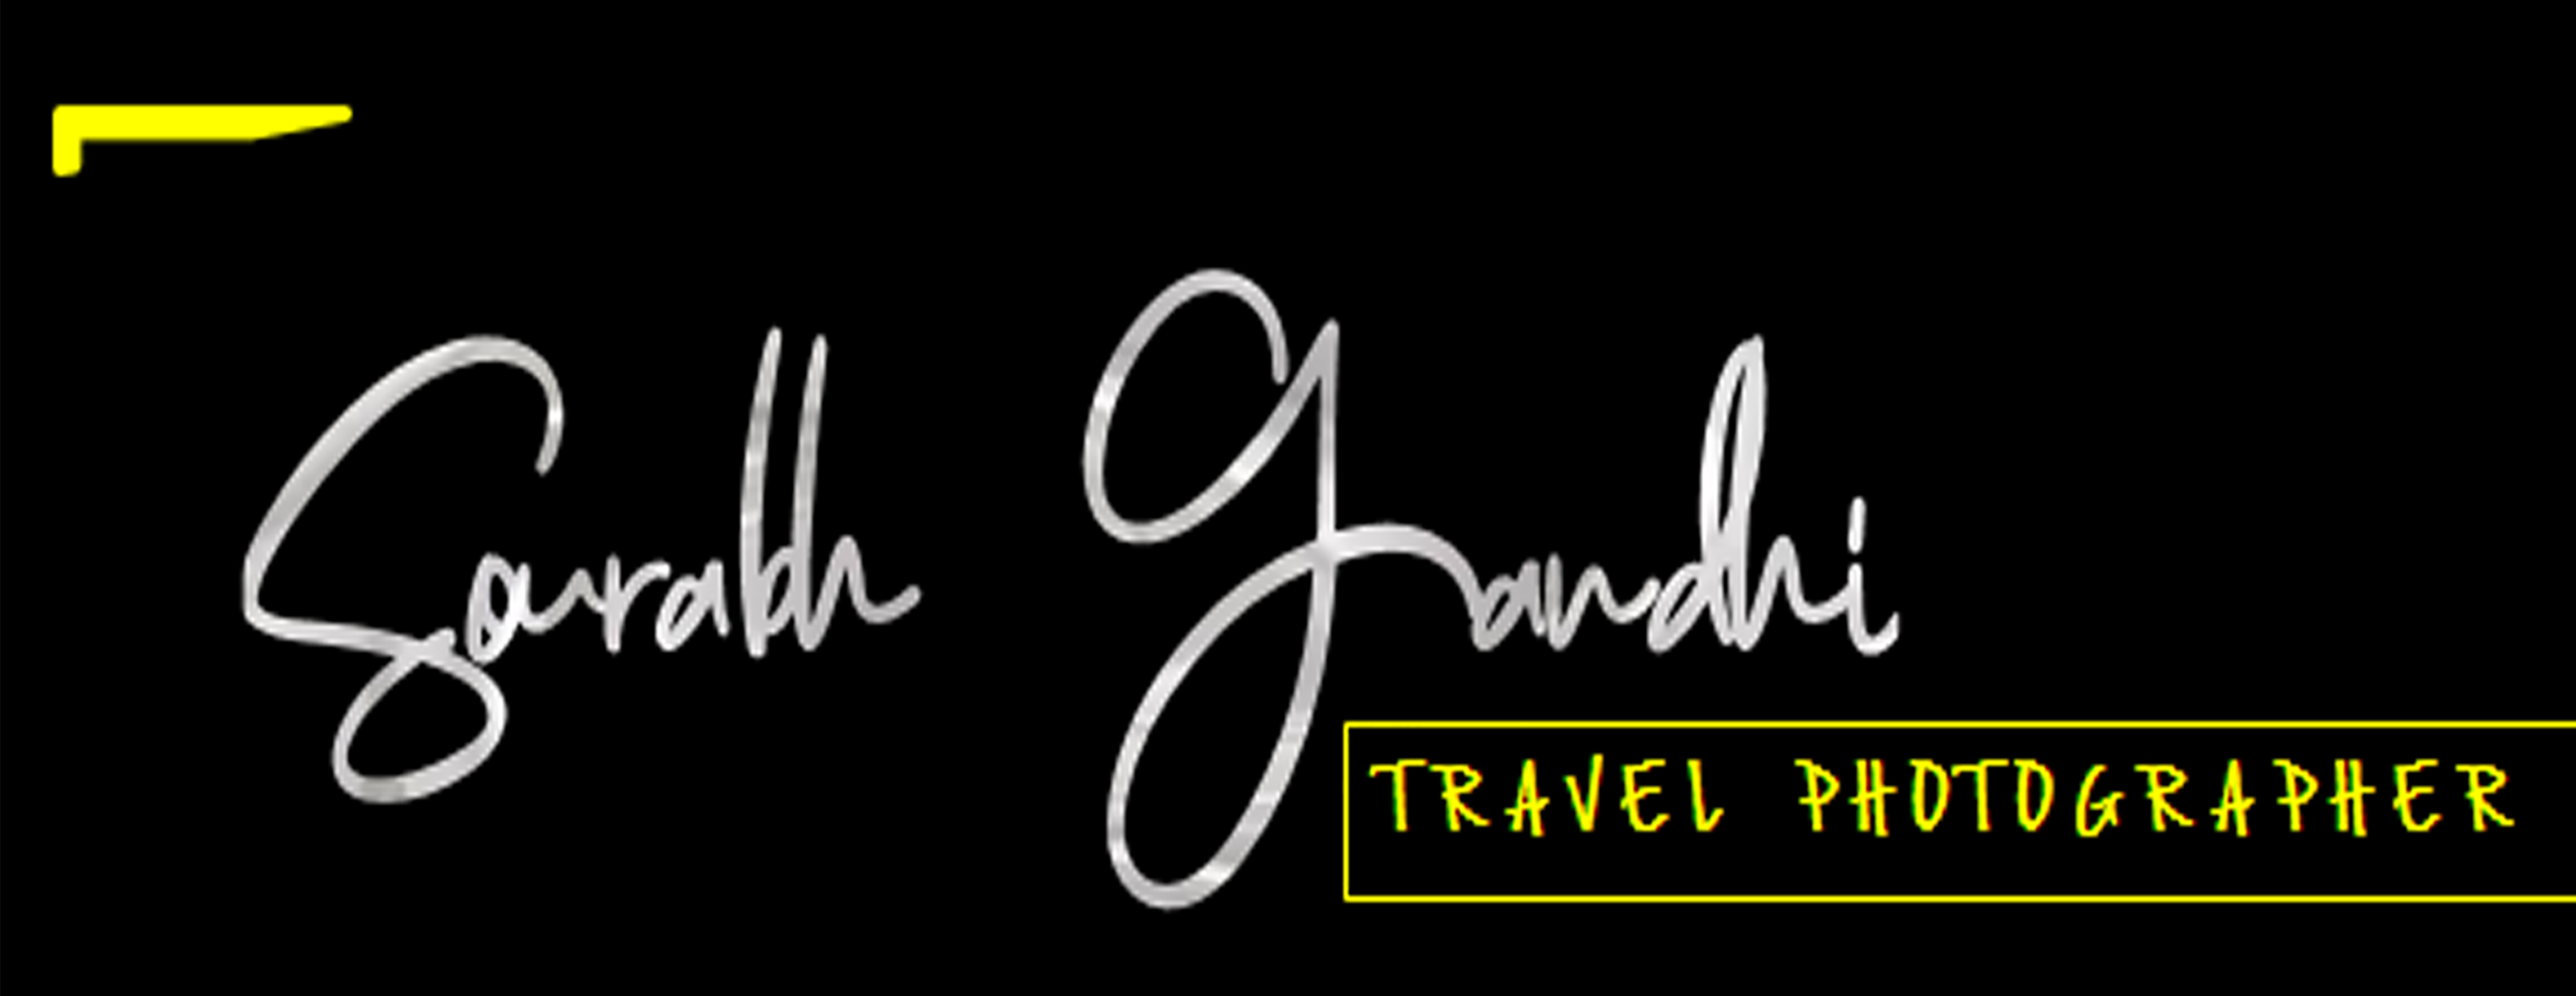 Travel Photographer - Sourabh Gandhi